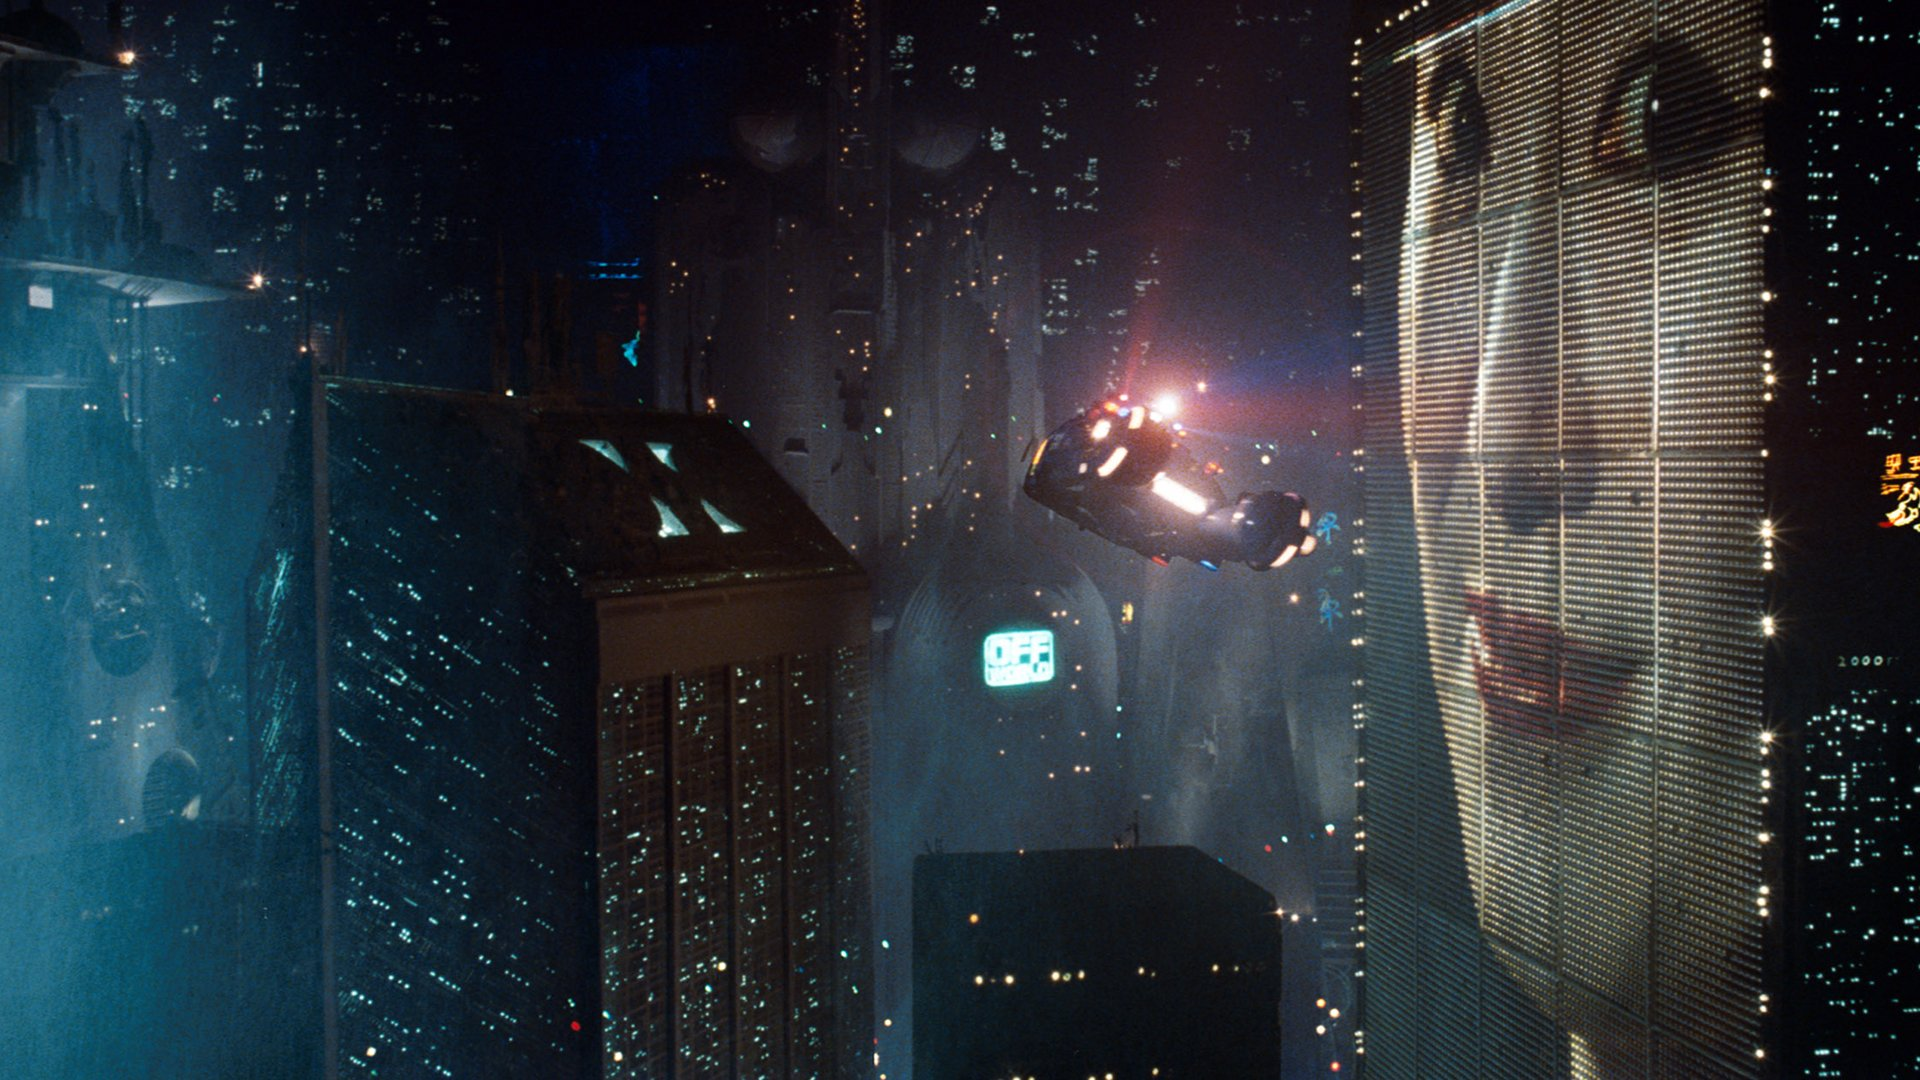 Blade Runner wallpaper 1920x1080 332258 WallpaperUP 1920x1080